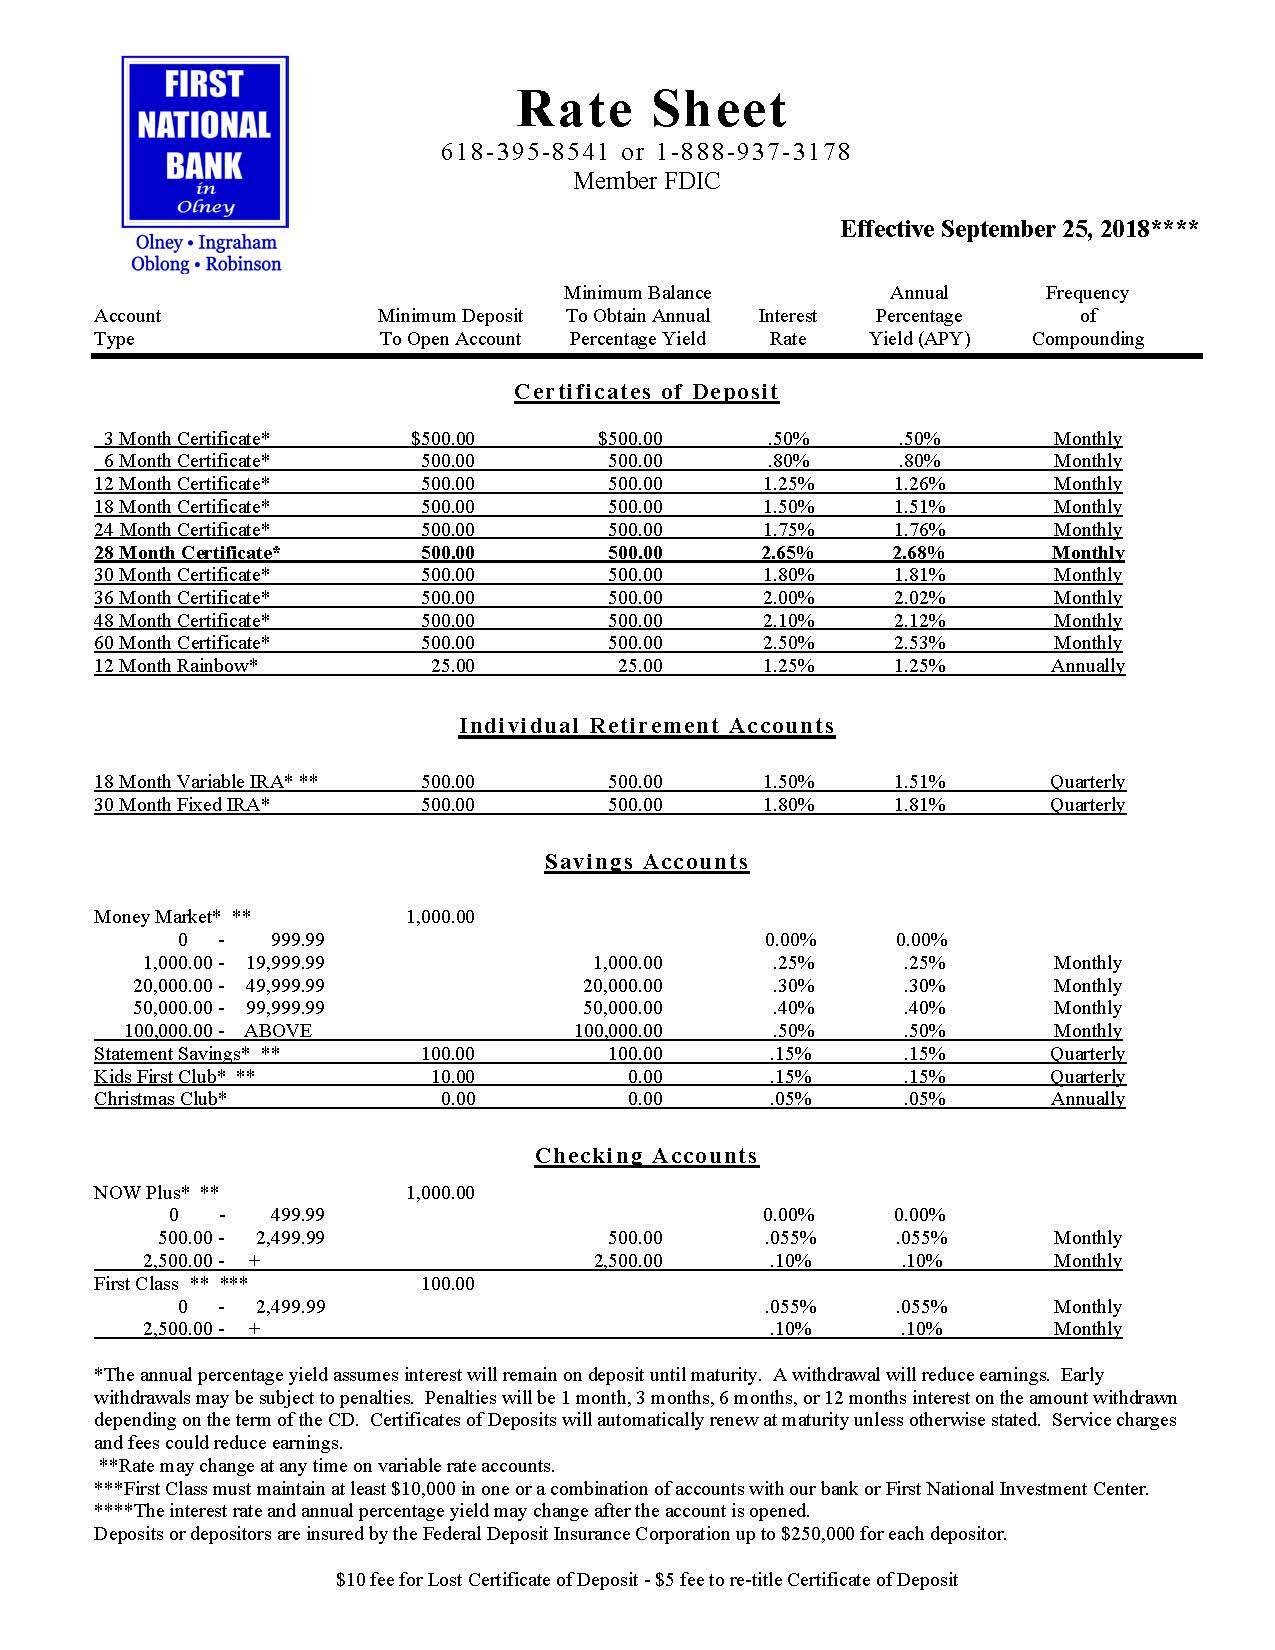 Deposit Rates First National Bank In Olney